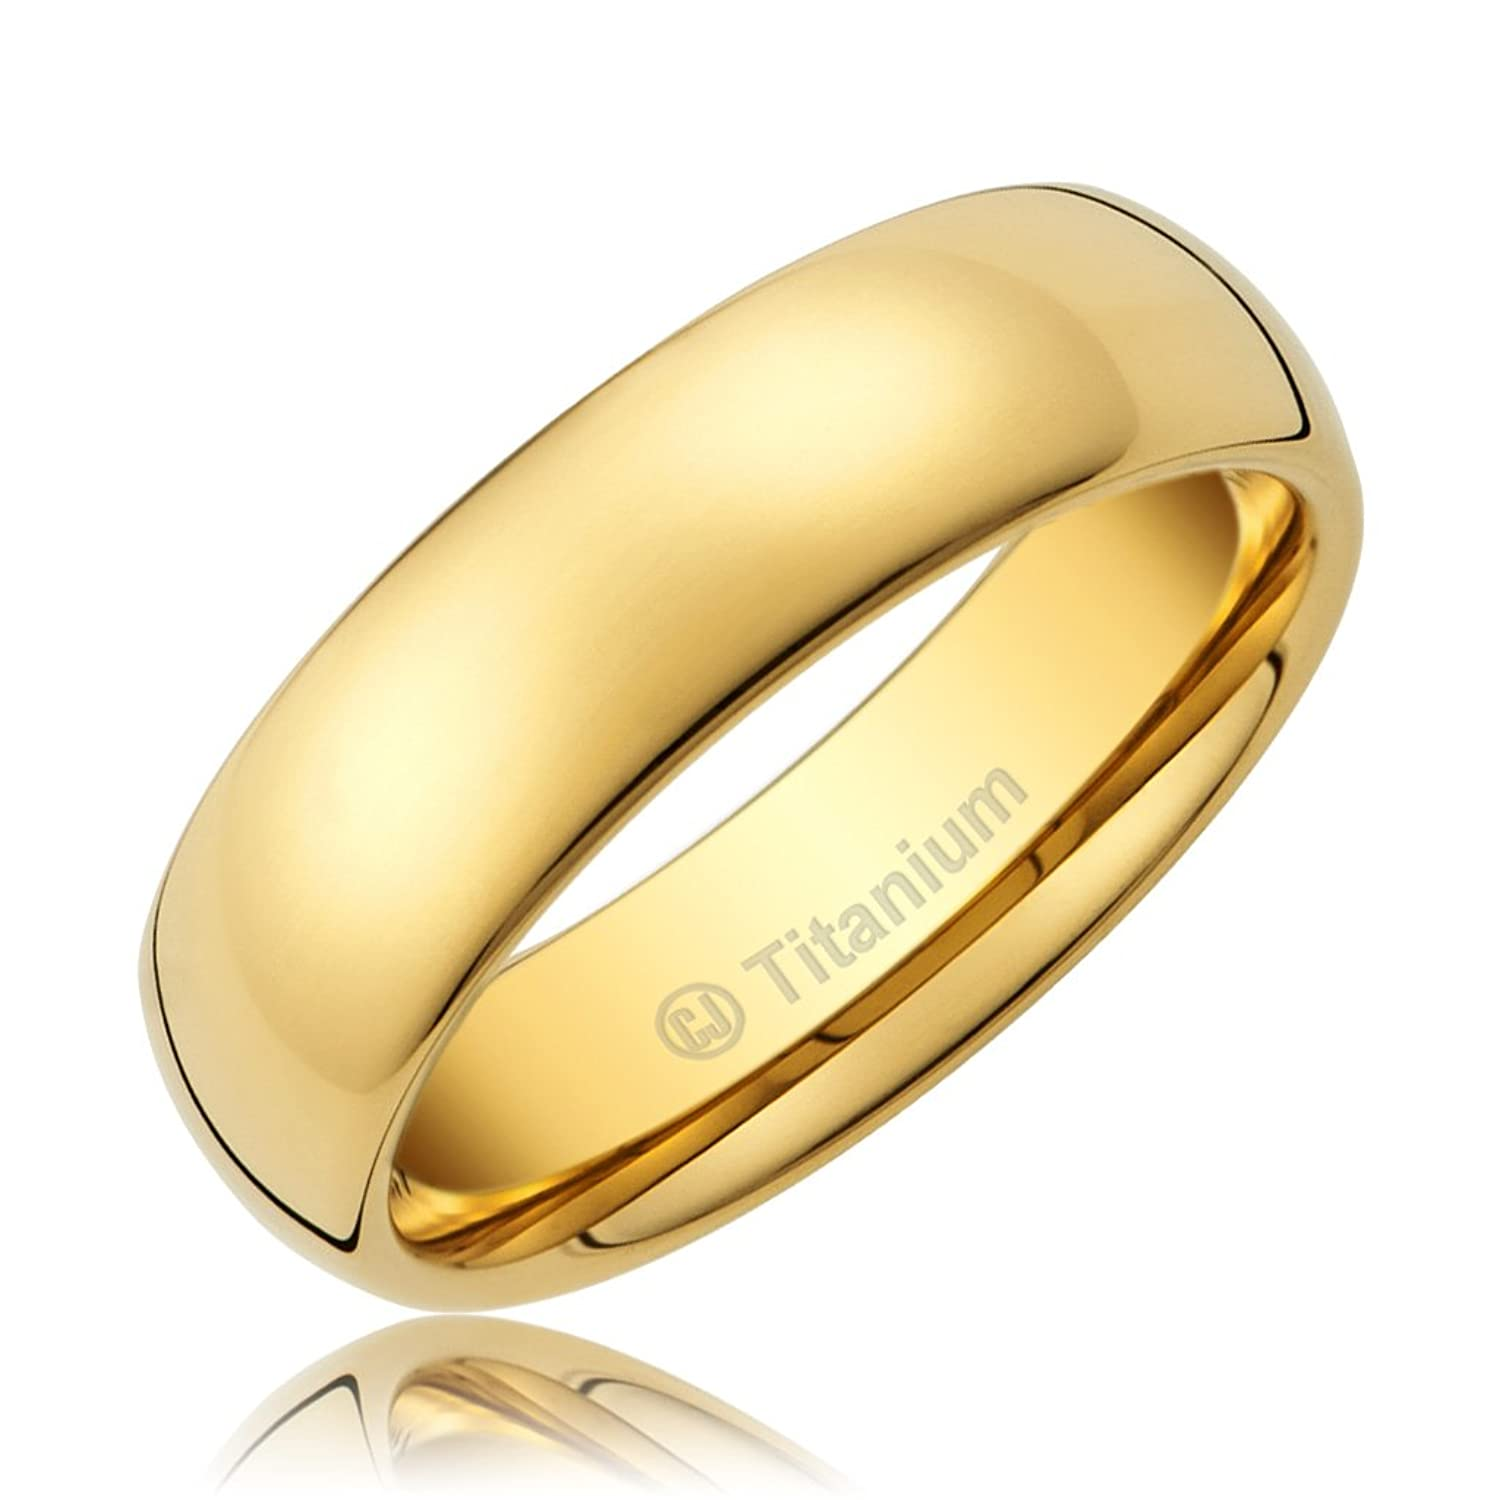 5MM Men s Titanium Ring Wedding Band 14K Gold Plated